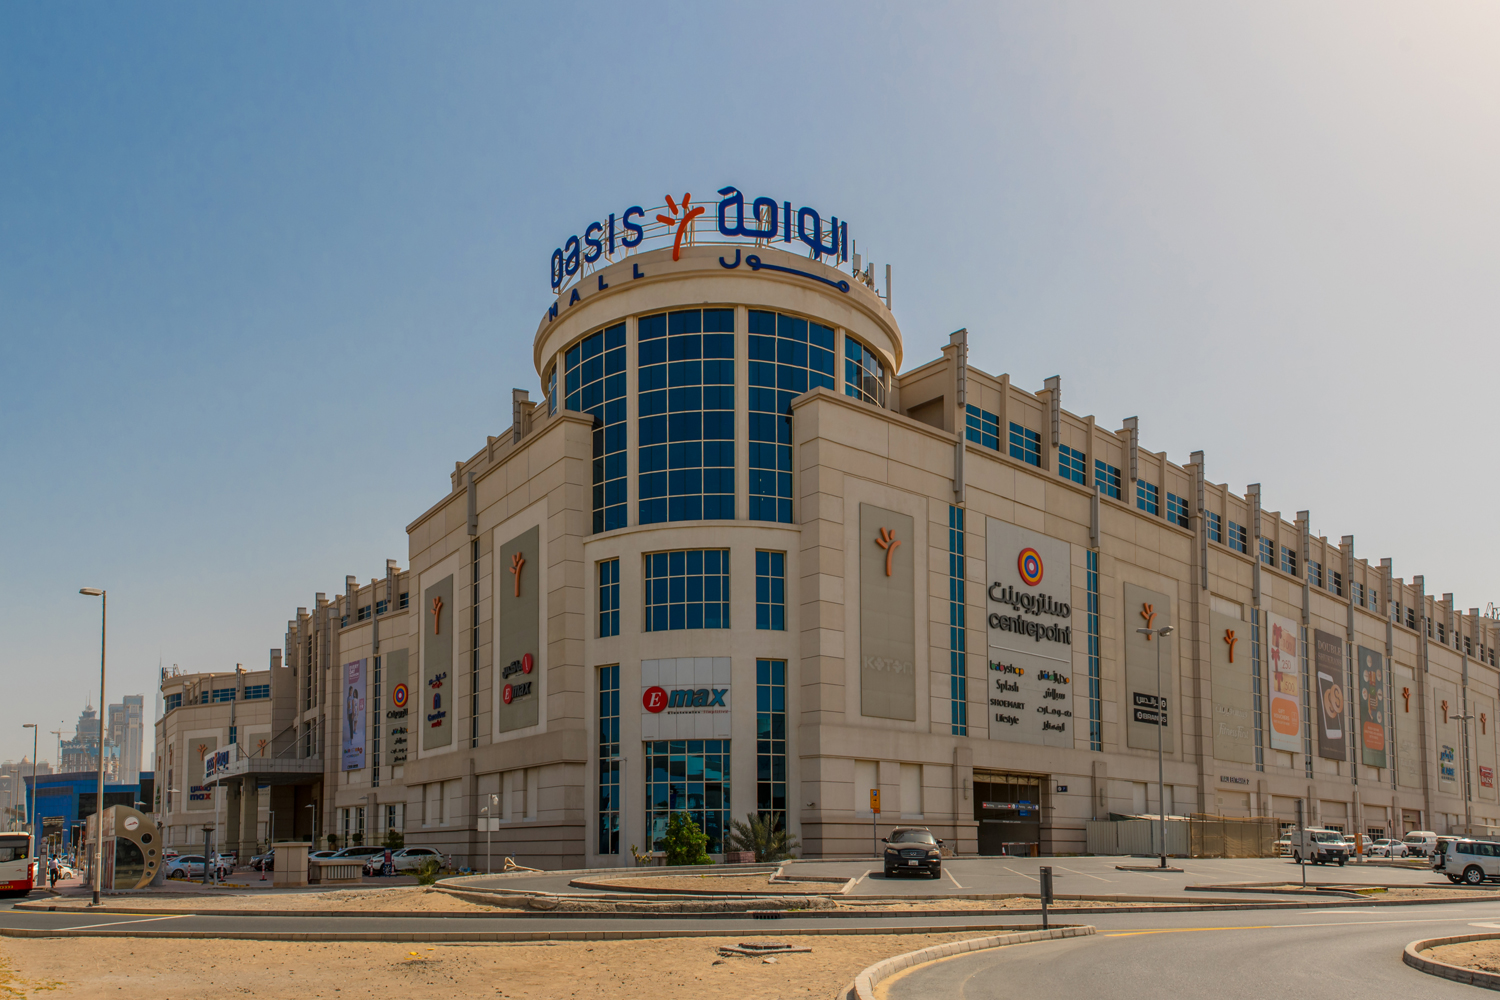 Oasis Mall Dubai has reopened with six new retailers